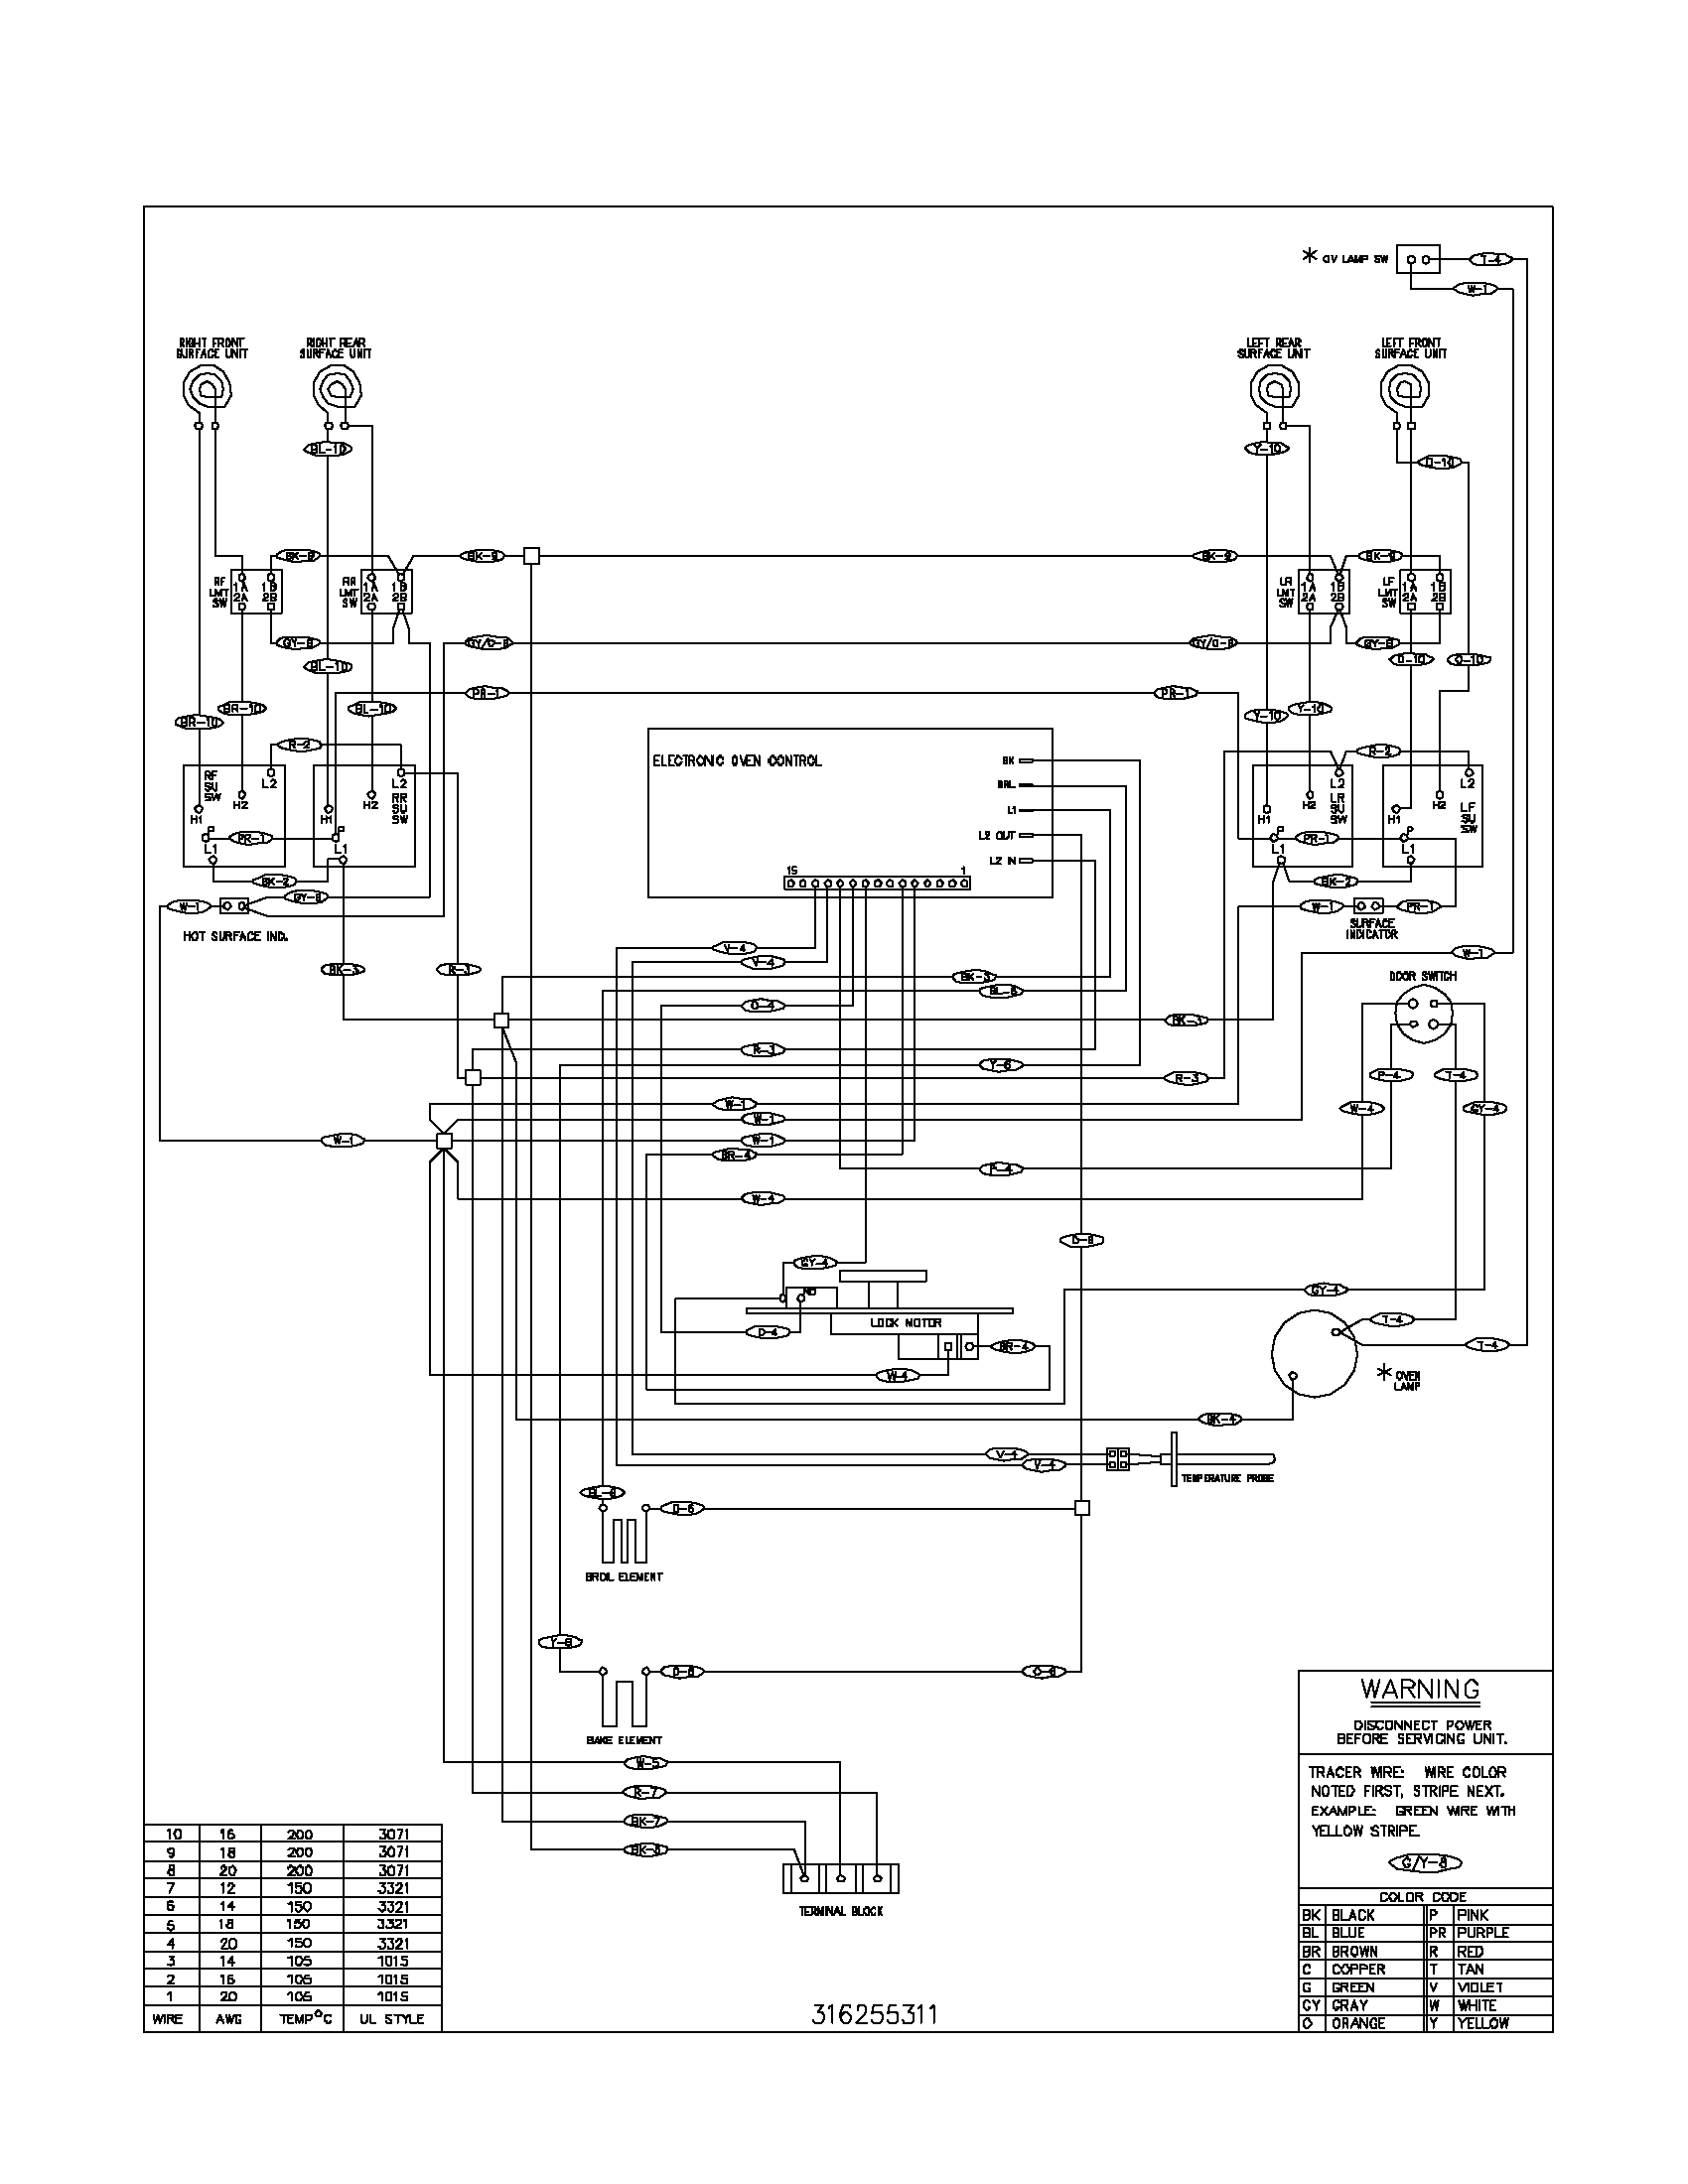 wiring diagram parts?resize\\\\\\\\\\\\\\\\\\\\\\\\\\\\\\\\\\\\\\\\\\\\\\\=665%2C861\\\\\\\\\\\\\\\\\\\\\\\\\\\\\\\\\\\\\\\\\\\\\\\&ssl\\\\\\\\\\\\\\\\\\\\\\\\\\\\\\\\\\\\\\\\\\\\\\\=1 rdx 755dz wiring diagram,dz \u2022 edmiracle co  at bayanpartner.co